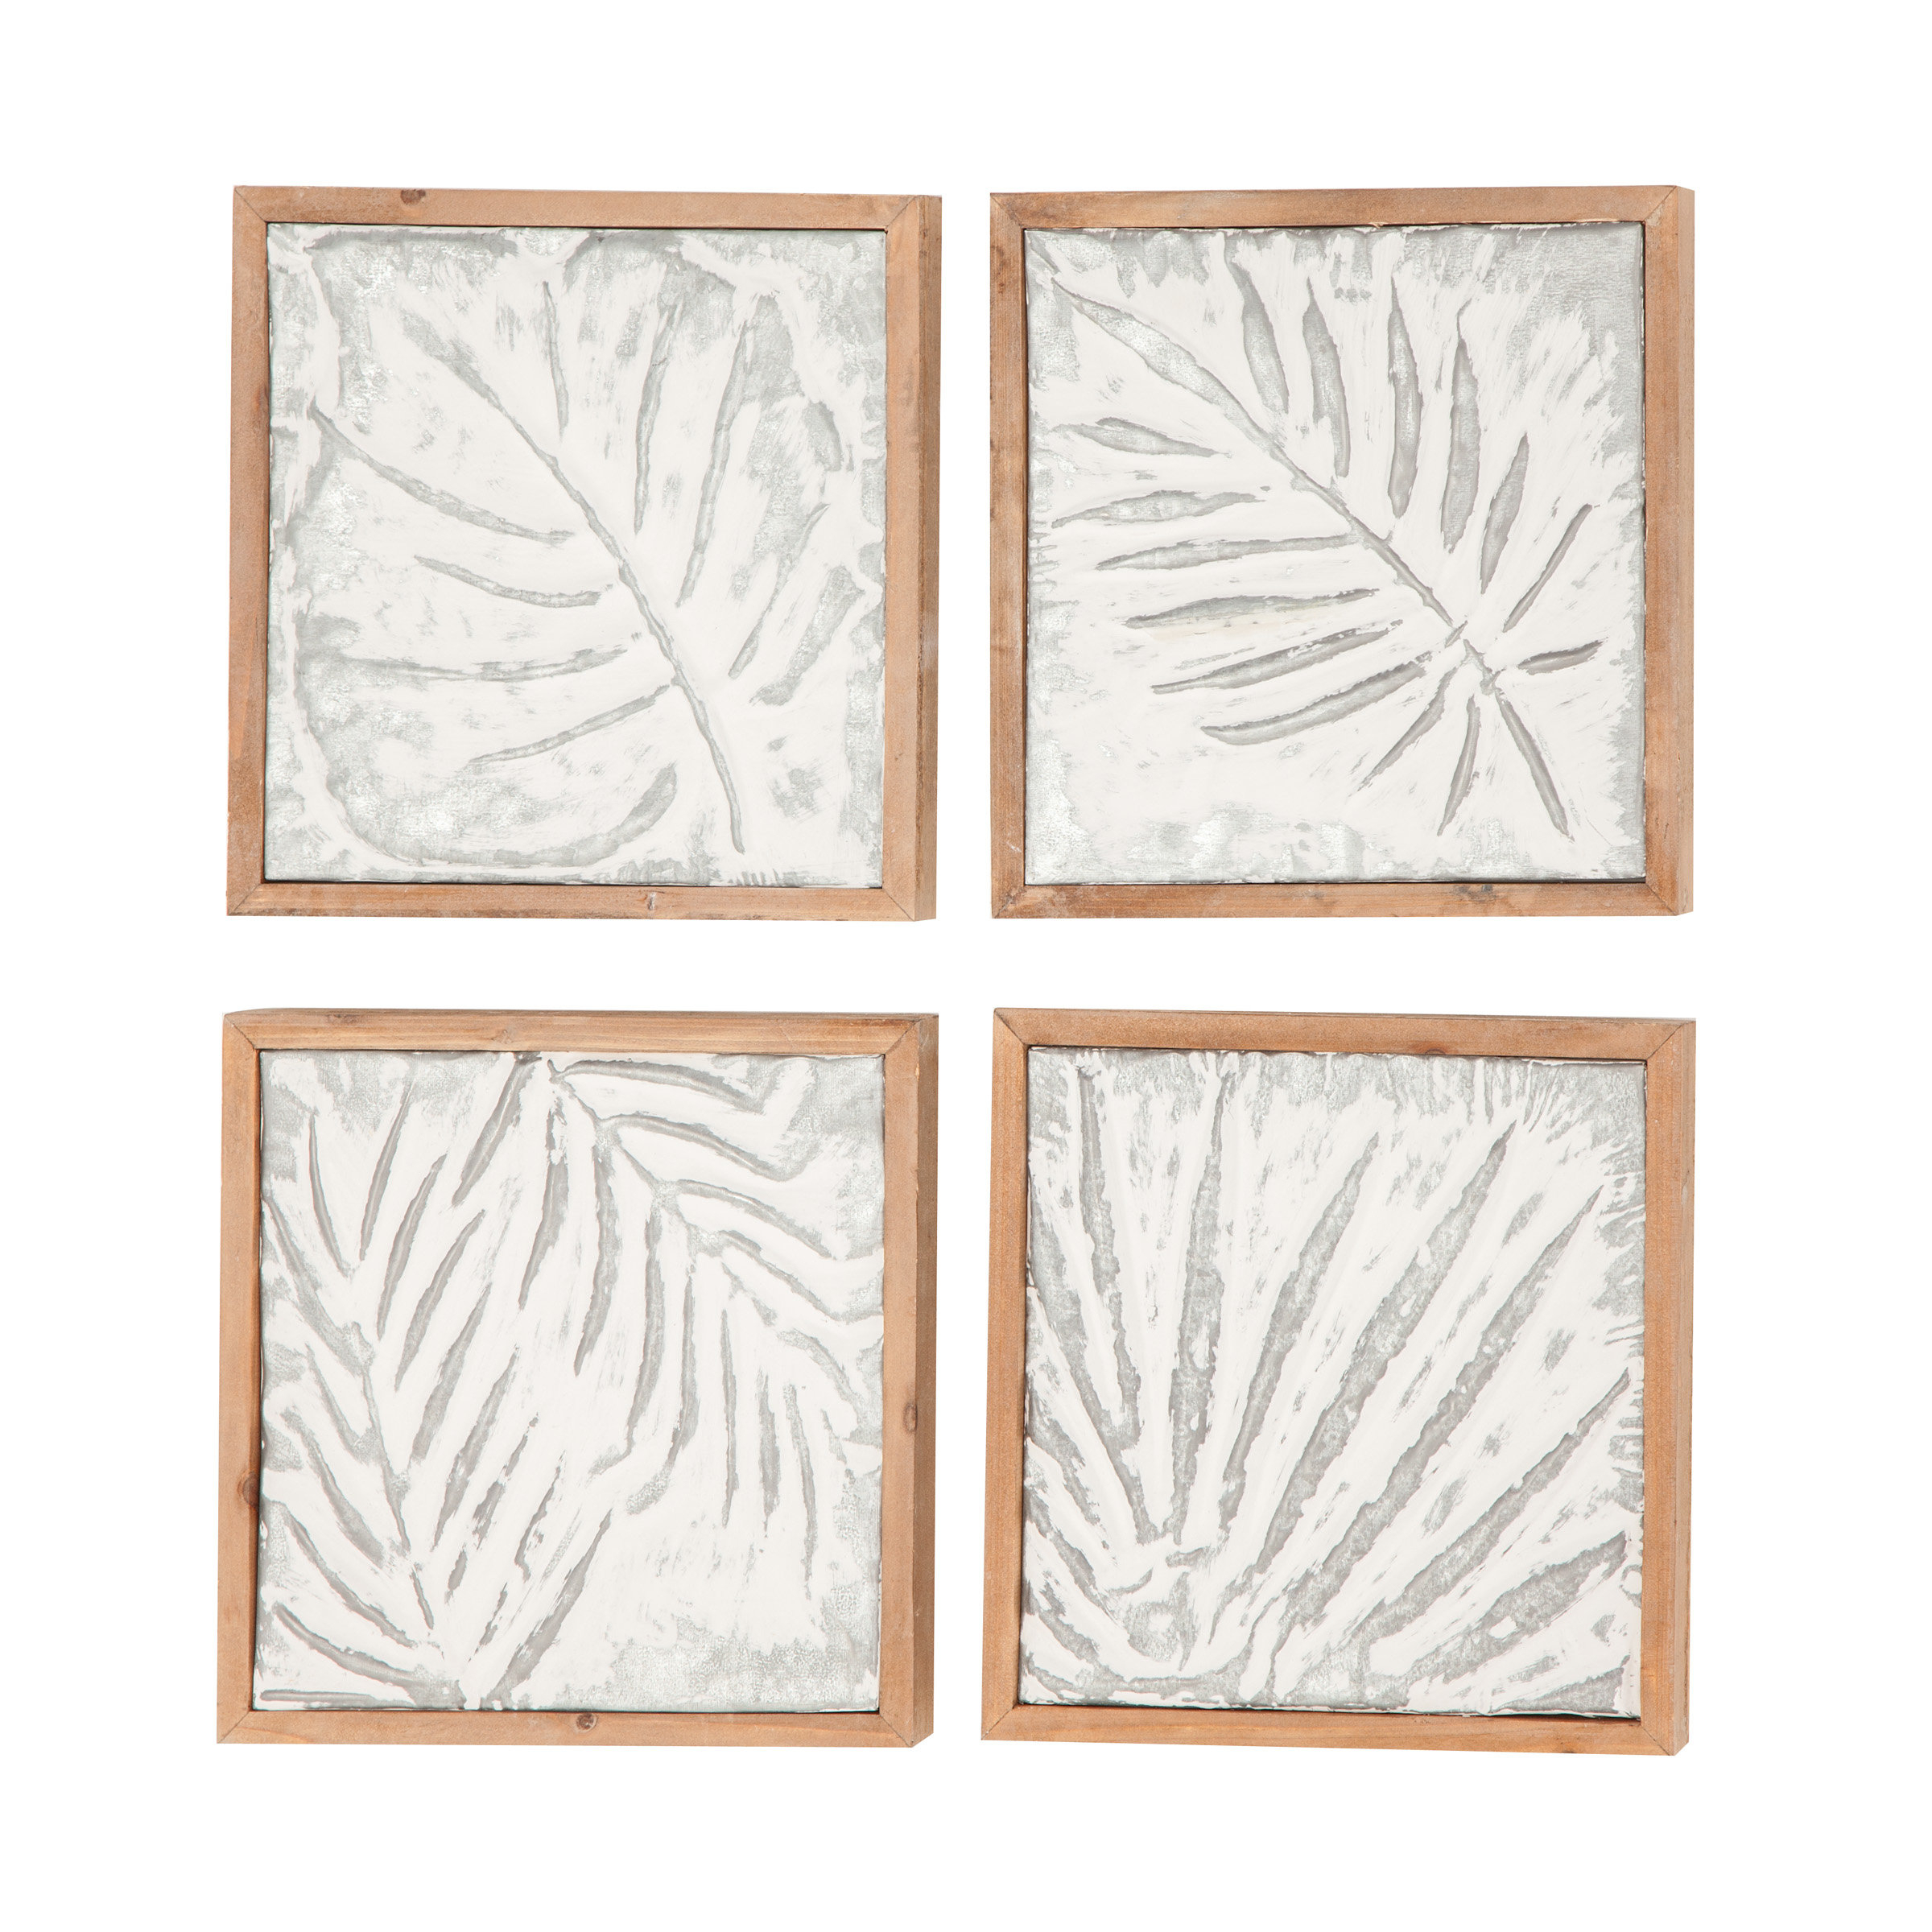 Wall Decor | Joss & Main intended for 2 Piece Starburst Wall Decor Sets (Image 28 of 30)